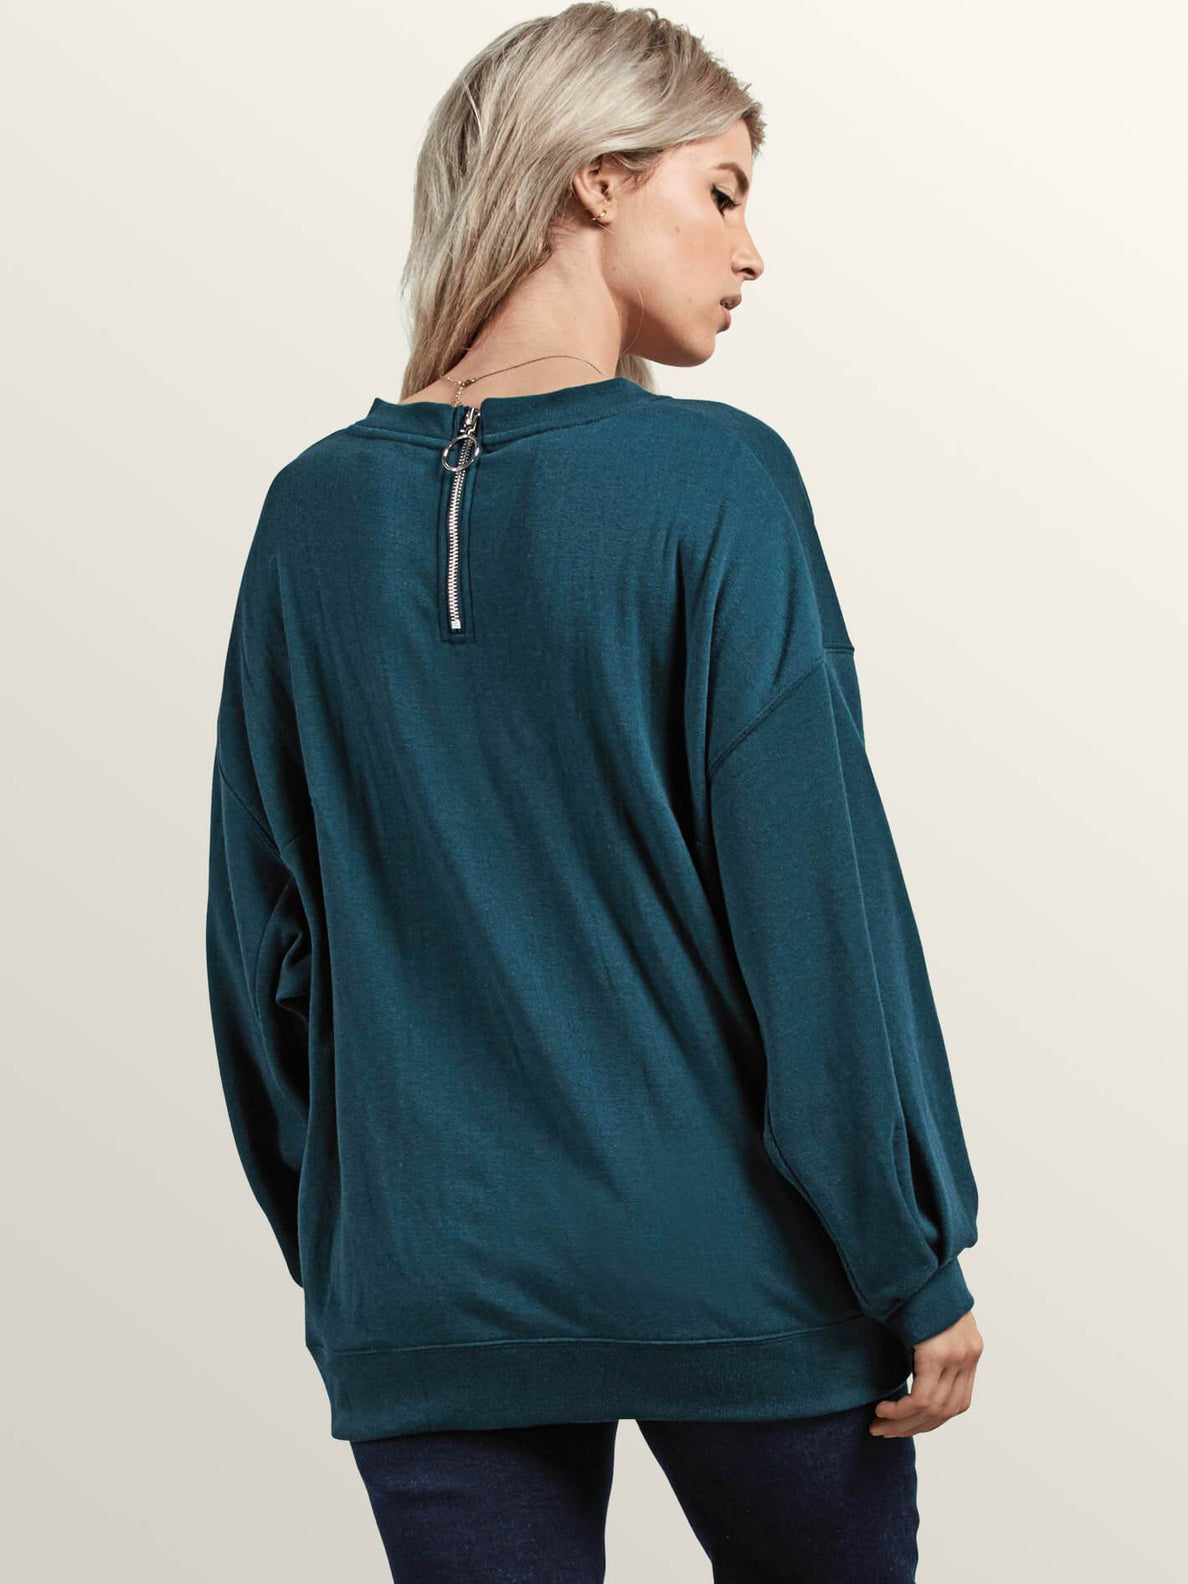 Darting Traffic Crew Sweatshirt In Evergreen, Back View